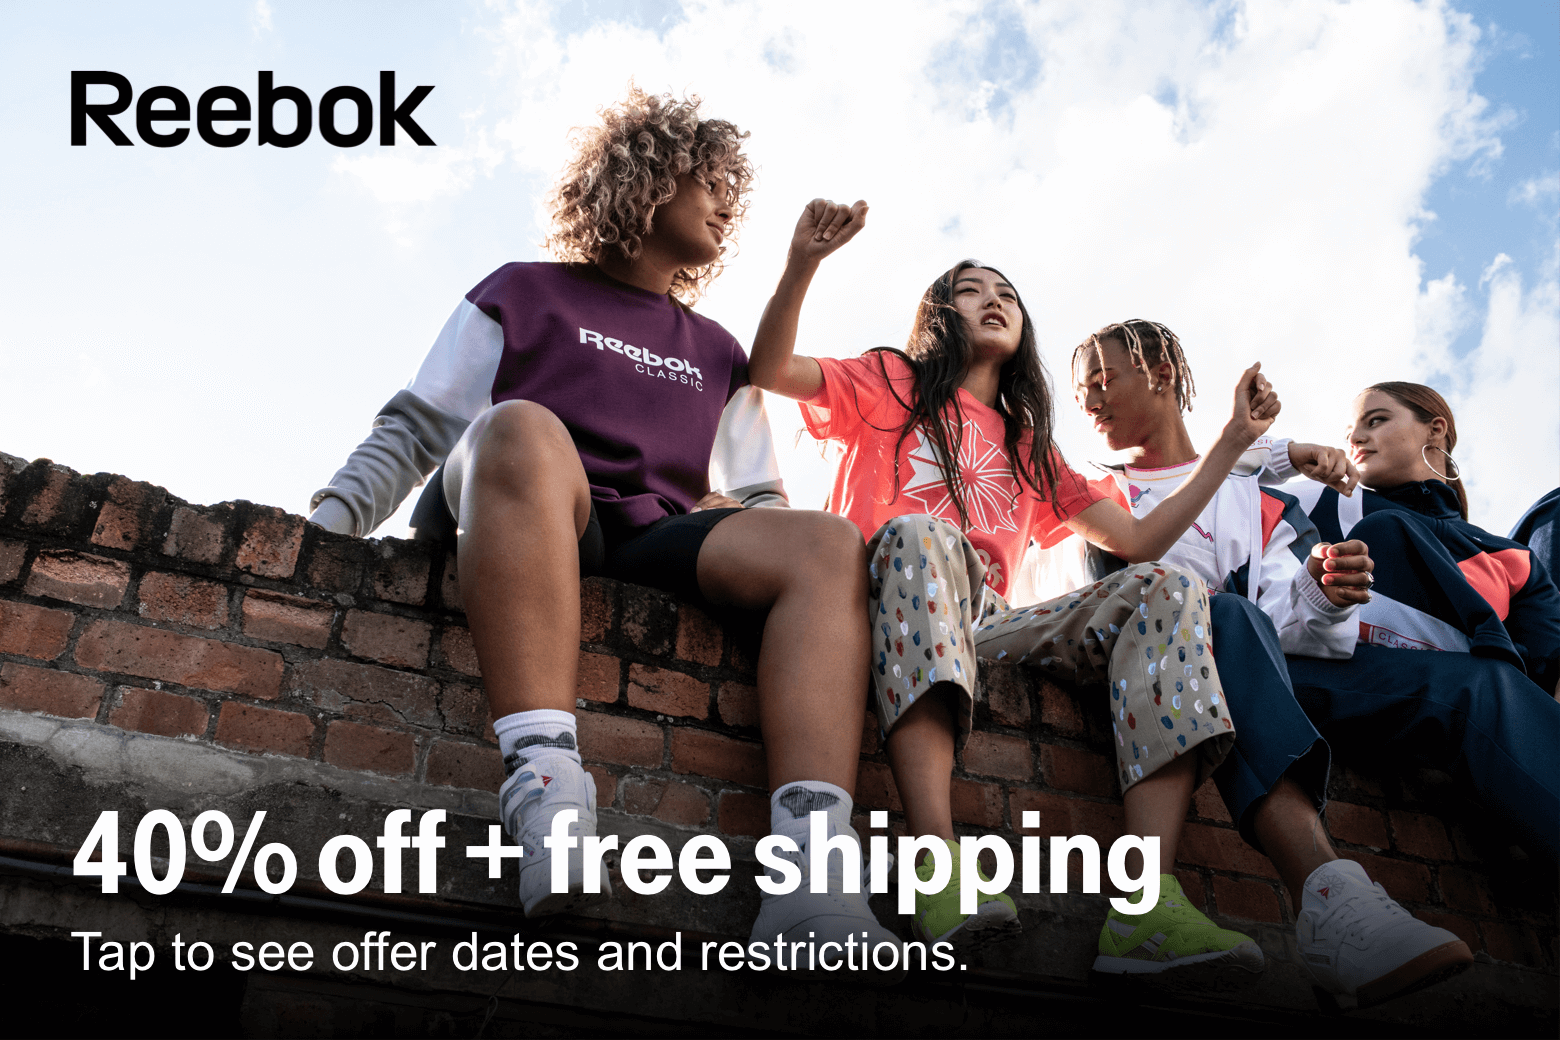 Reebok. 40% off +free shipping. Tap to see offer dates and restrictions.